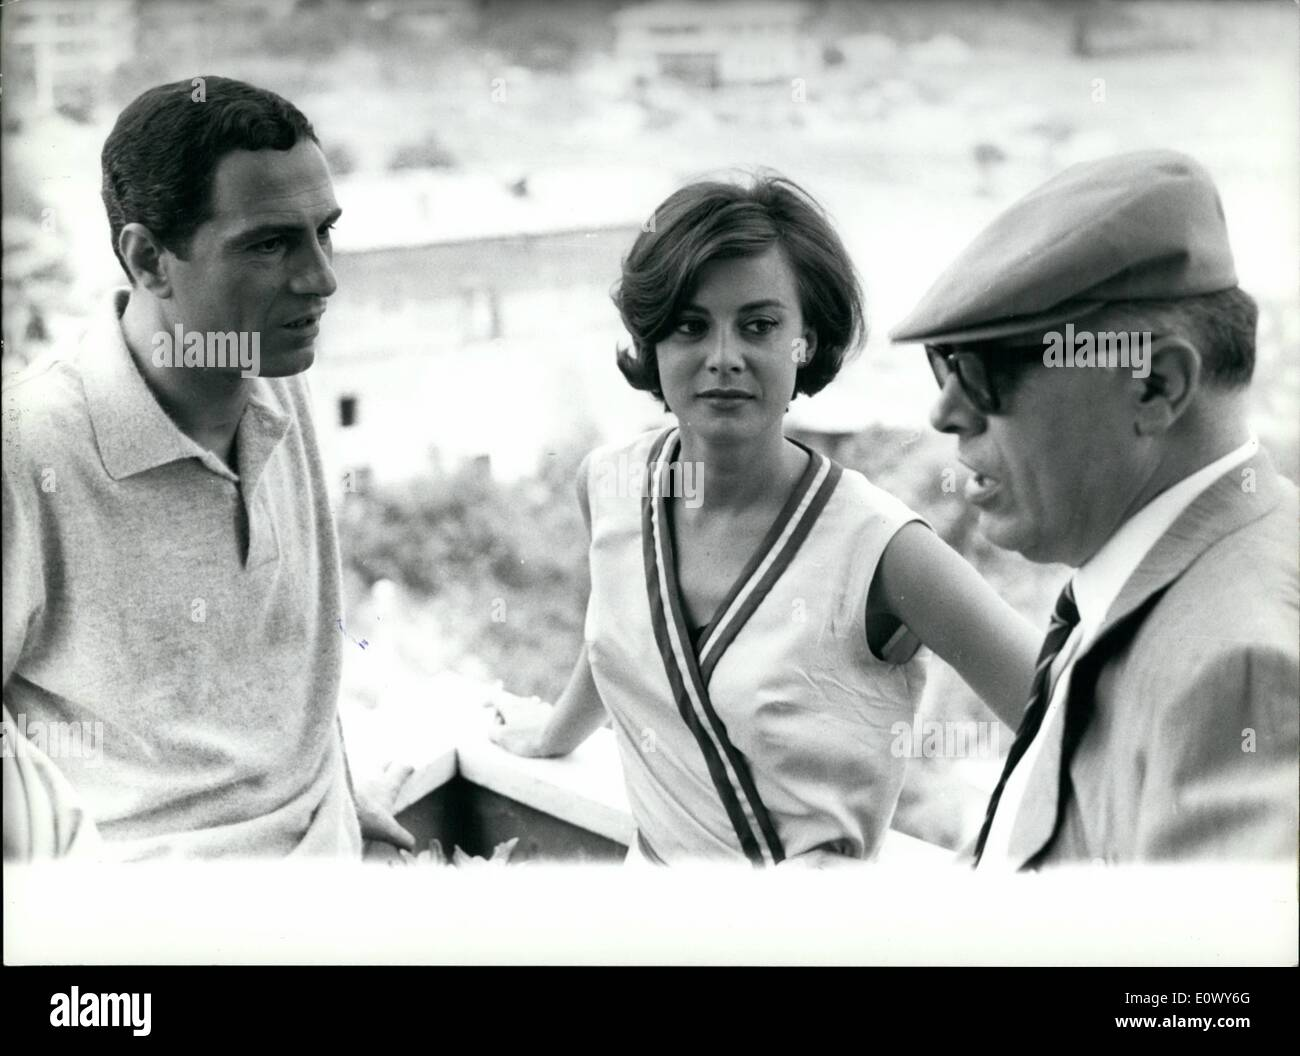 Jun. 06, 1964 - Anna Maria Ferrero the italian film star wife of French actor Jean Sorel is in Rome; for the first time since she married, the actress has began the shooting of a new film: a comic story ''Cocaine la dimanche'' with well-known italian comic actor Nino Manfredi. Photo shows producer Carlo Ponti Sofia Loren's husband visits Anna Maria Ferrero and Manfredi on the ''set'' of the film. - Stock Image